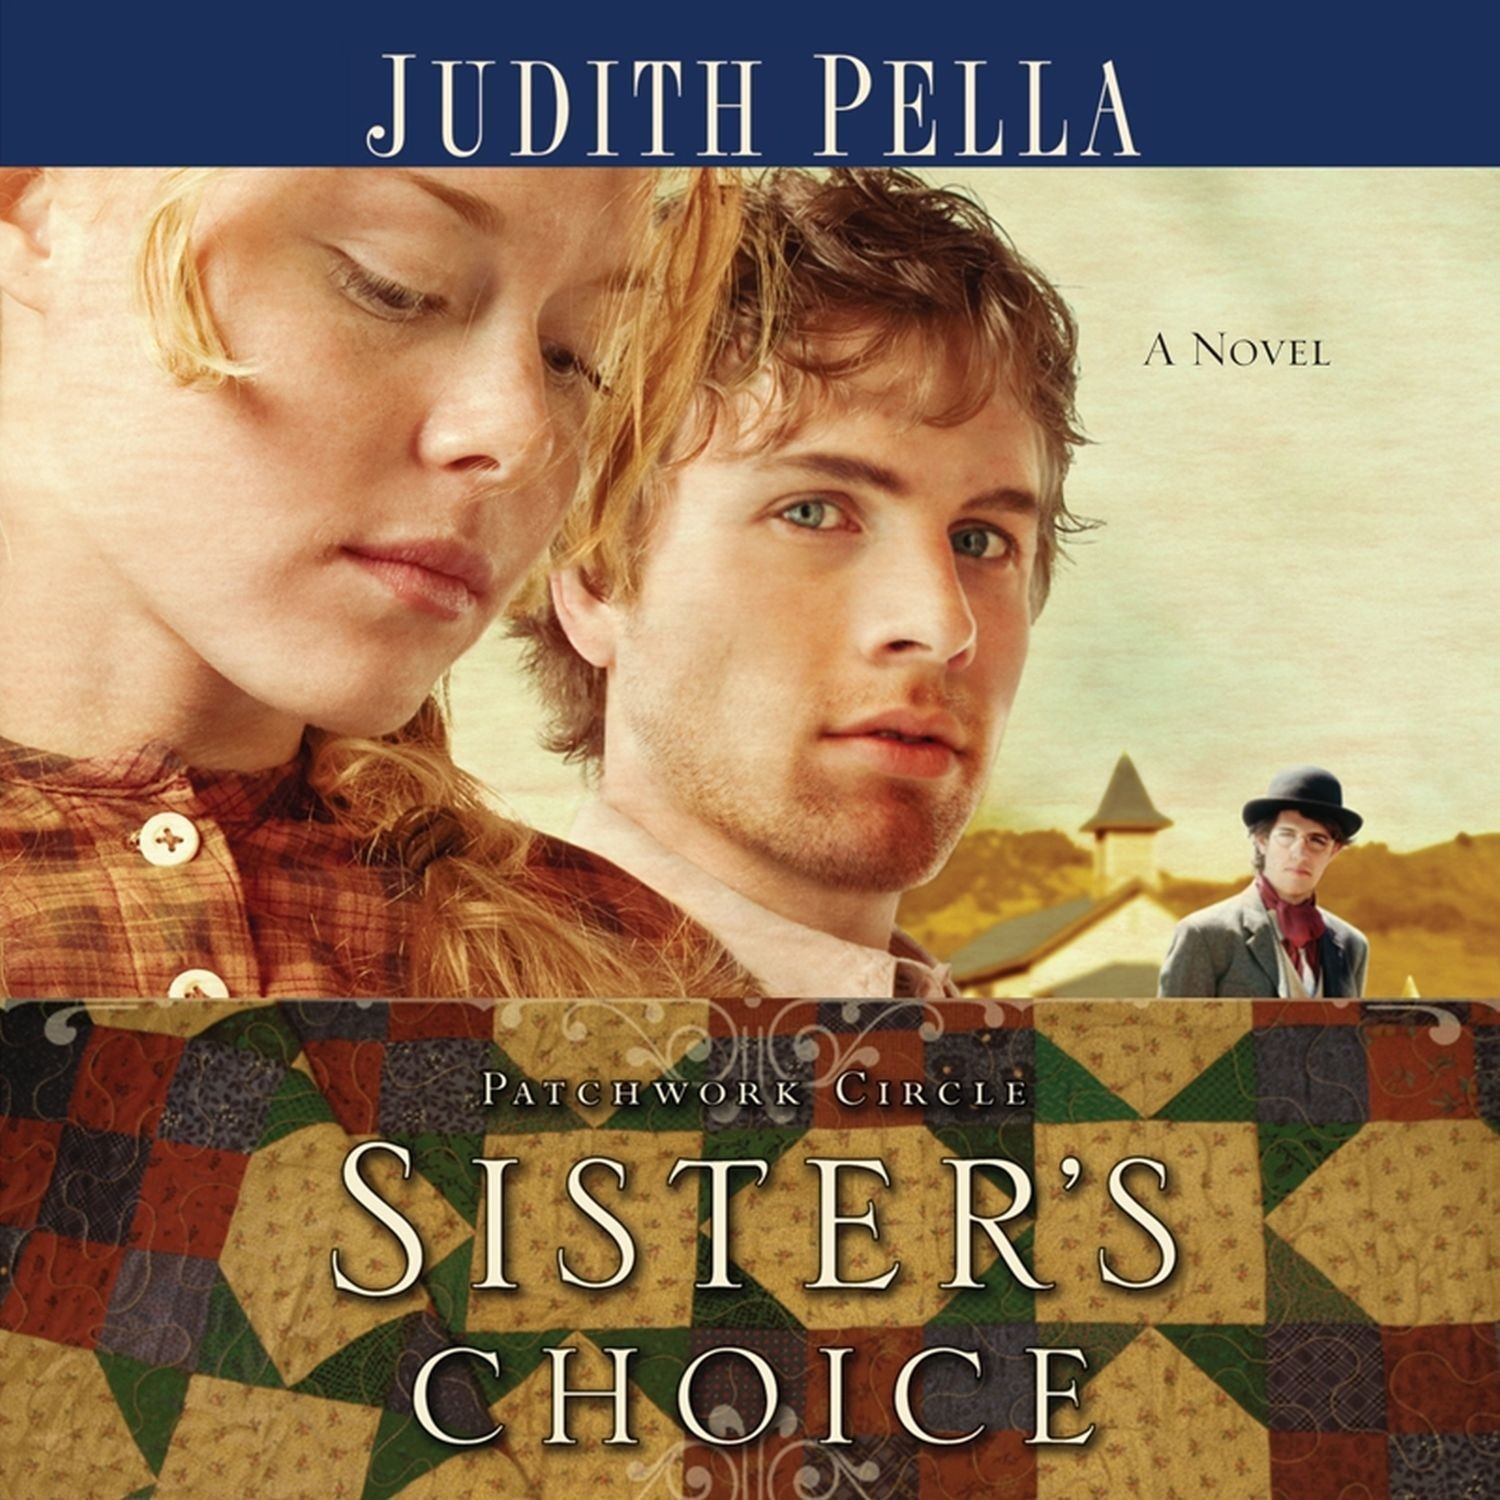 Printable Sister's Choice Audiobook Cover Art